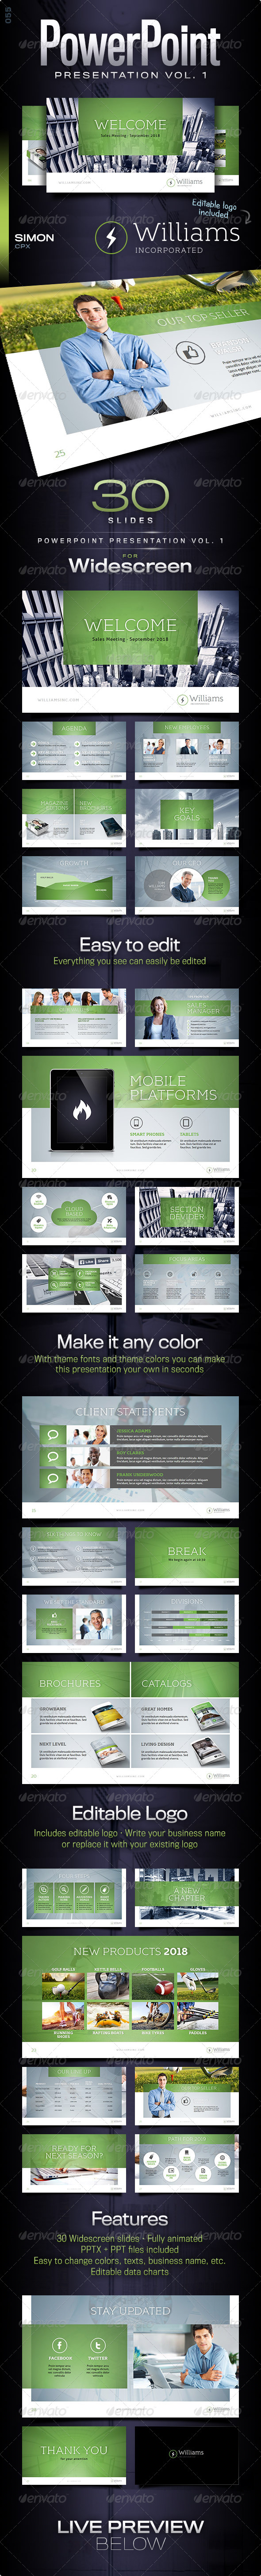 GraphicRiver PowerPoint Presentation Vol 1 7458030